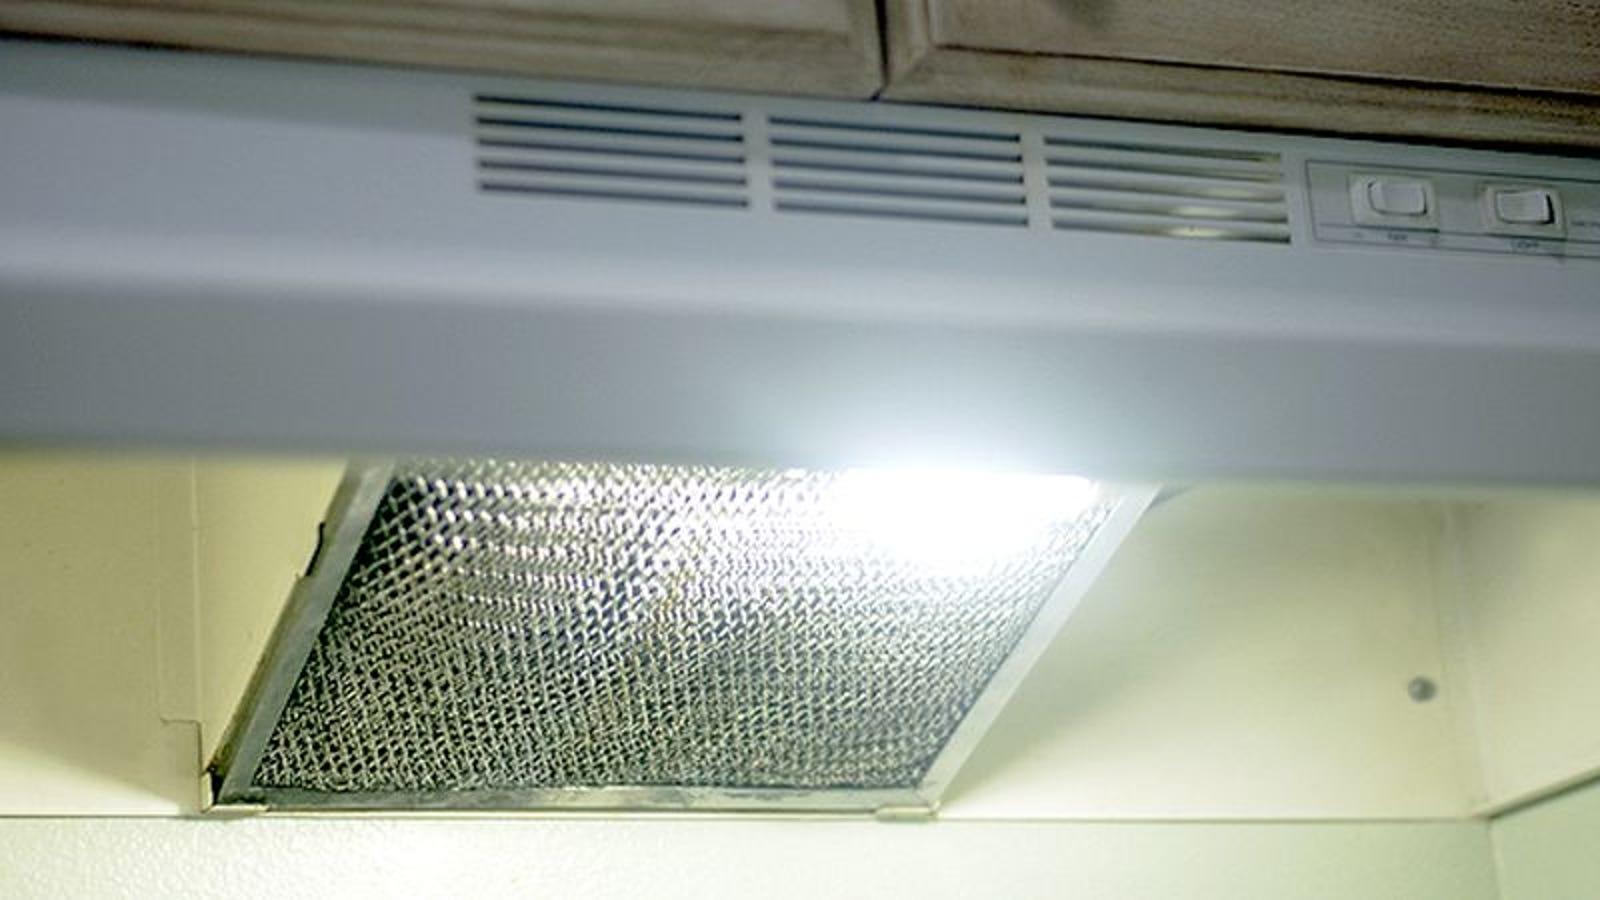 Clean Your Greasy Stove Filter with Boiling Water and Baking Soda